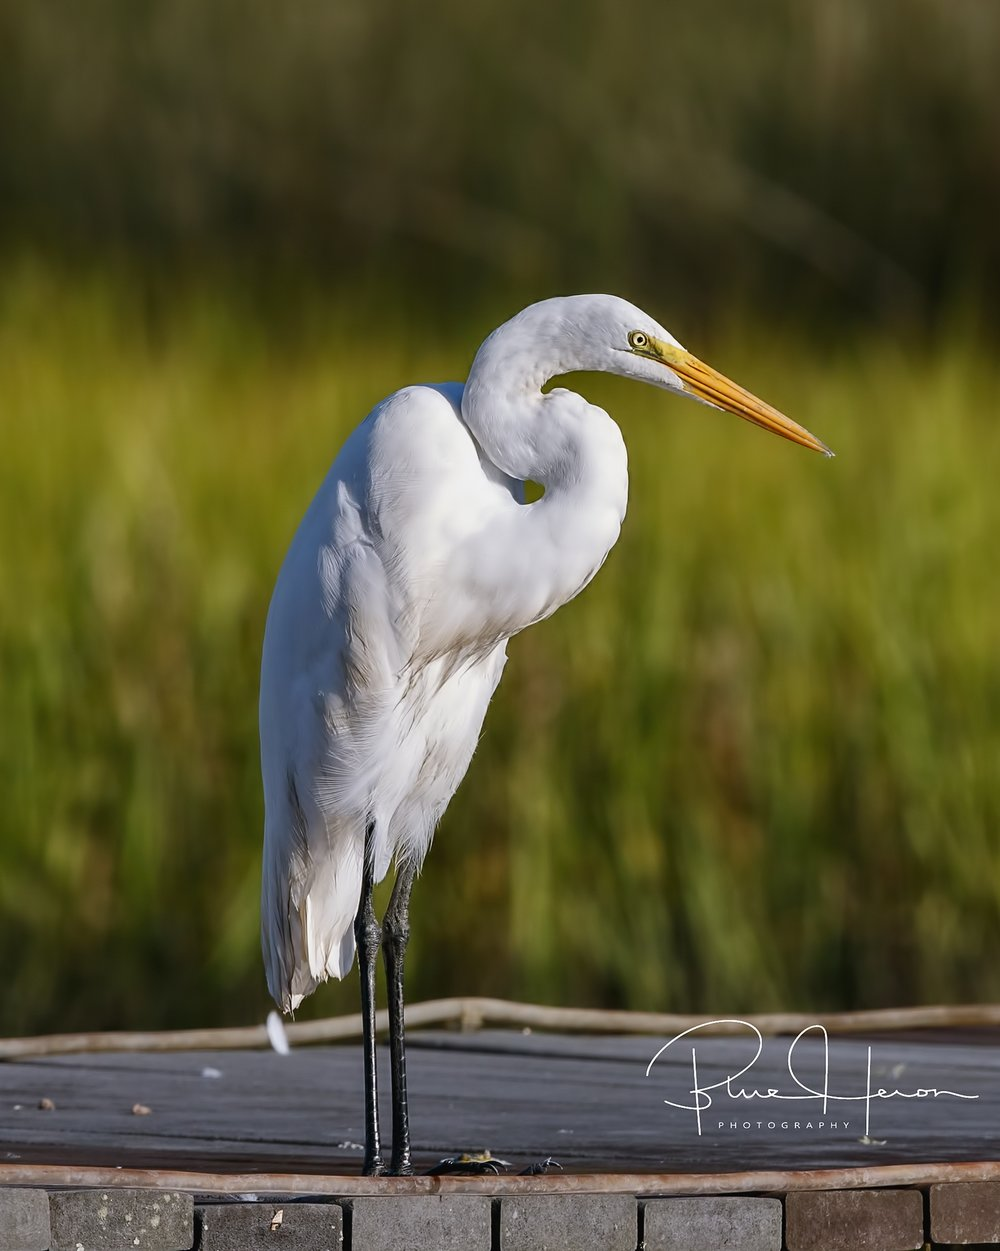 A yellow beak and black feet distinguish the egret from its smaller cousin, the snowy egret.